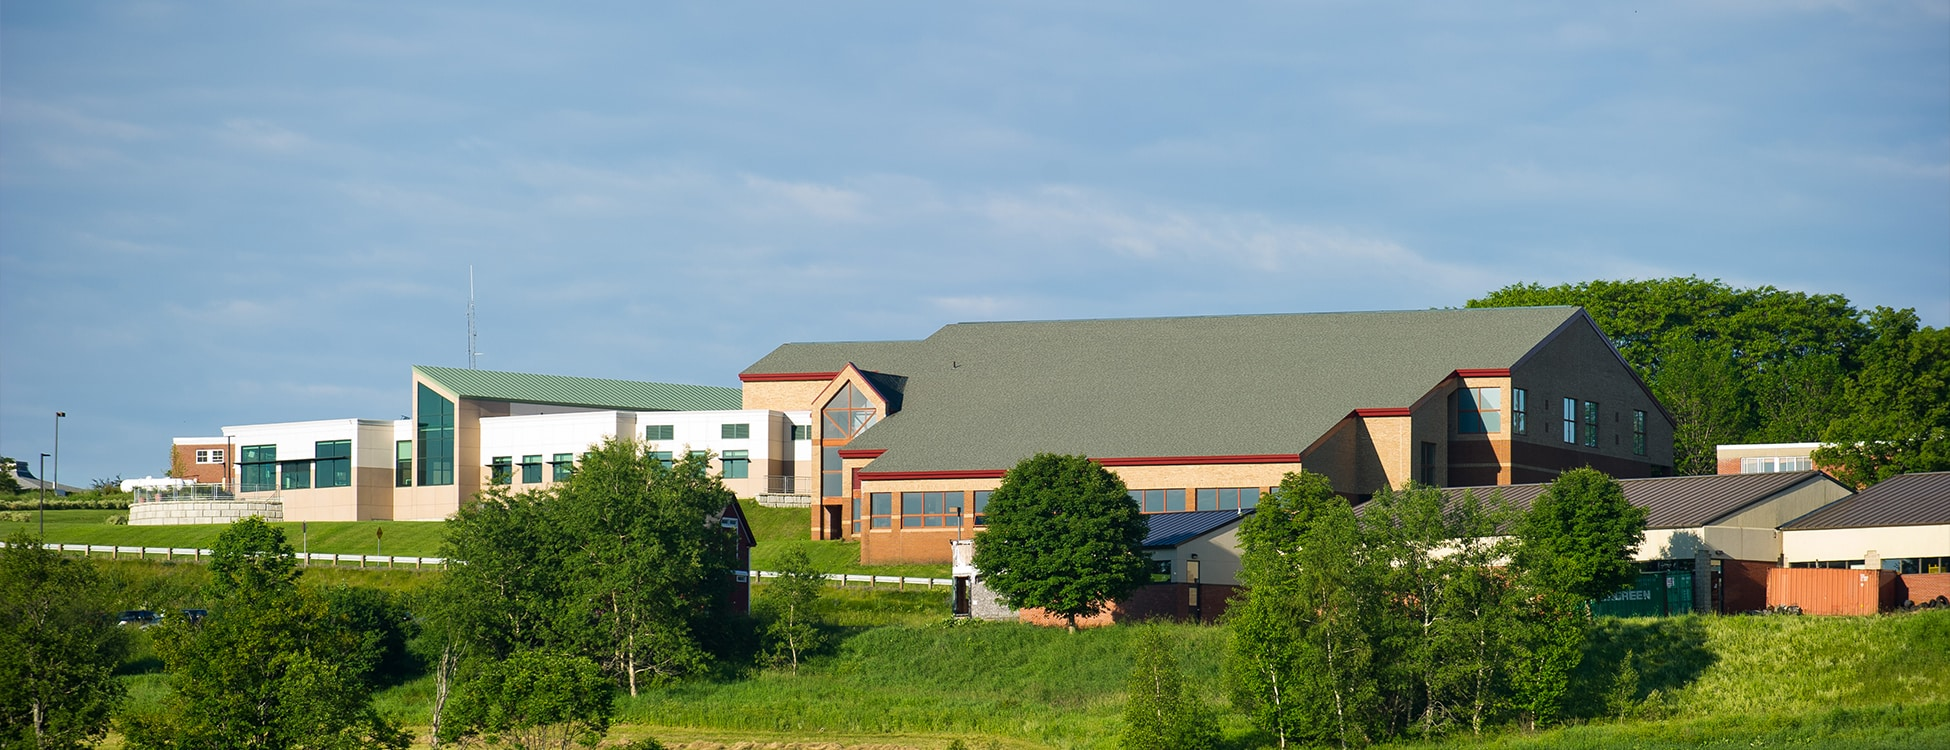 SHAPE building, Randolph Center campus